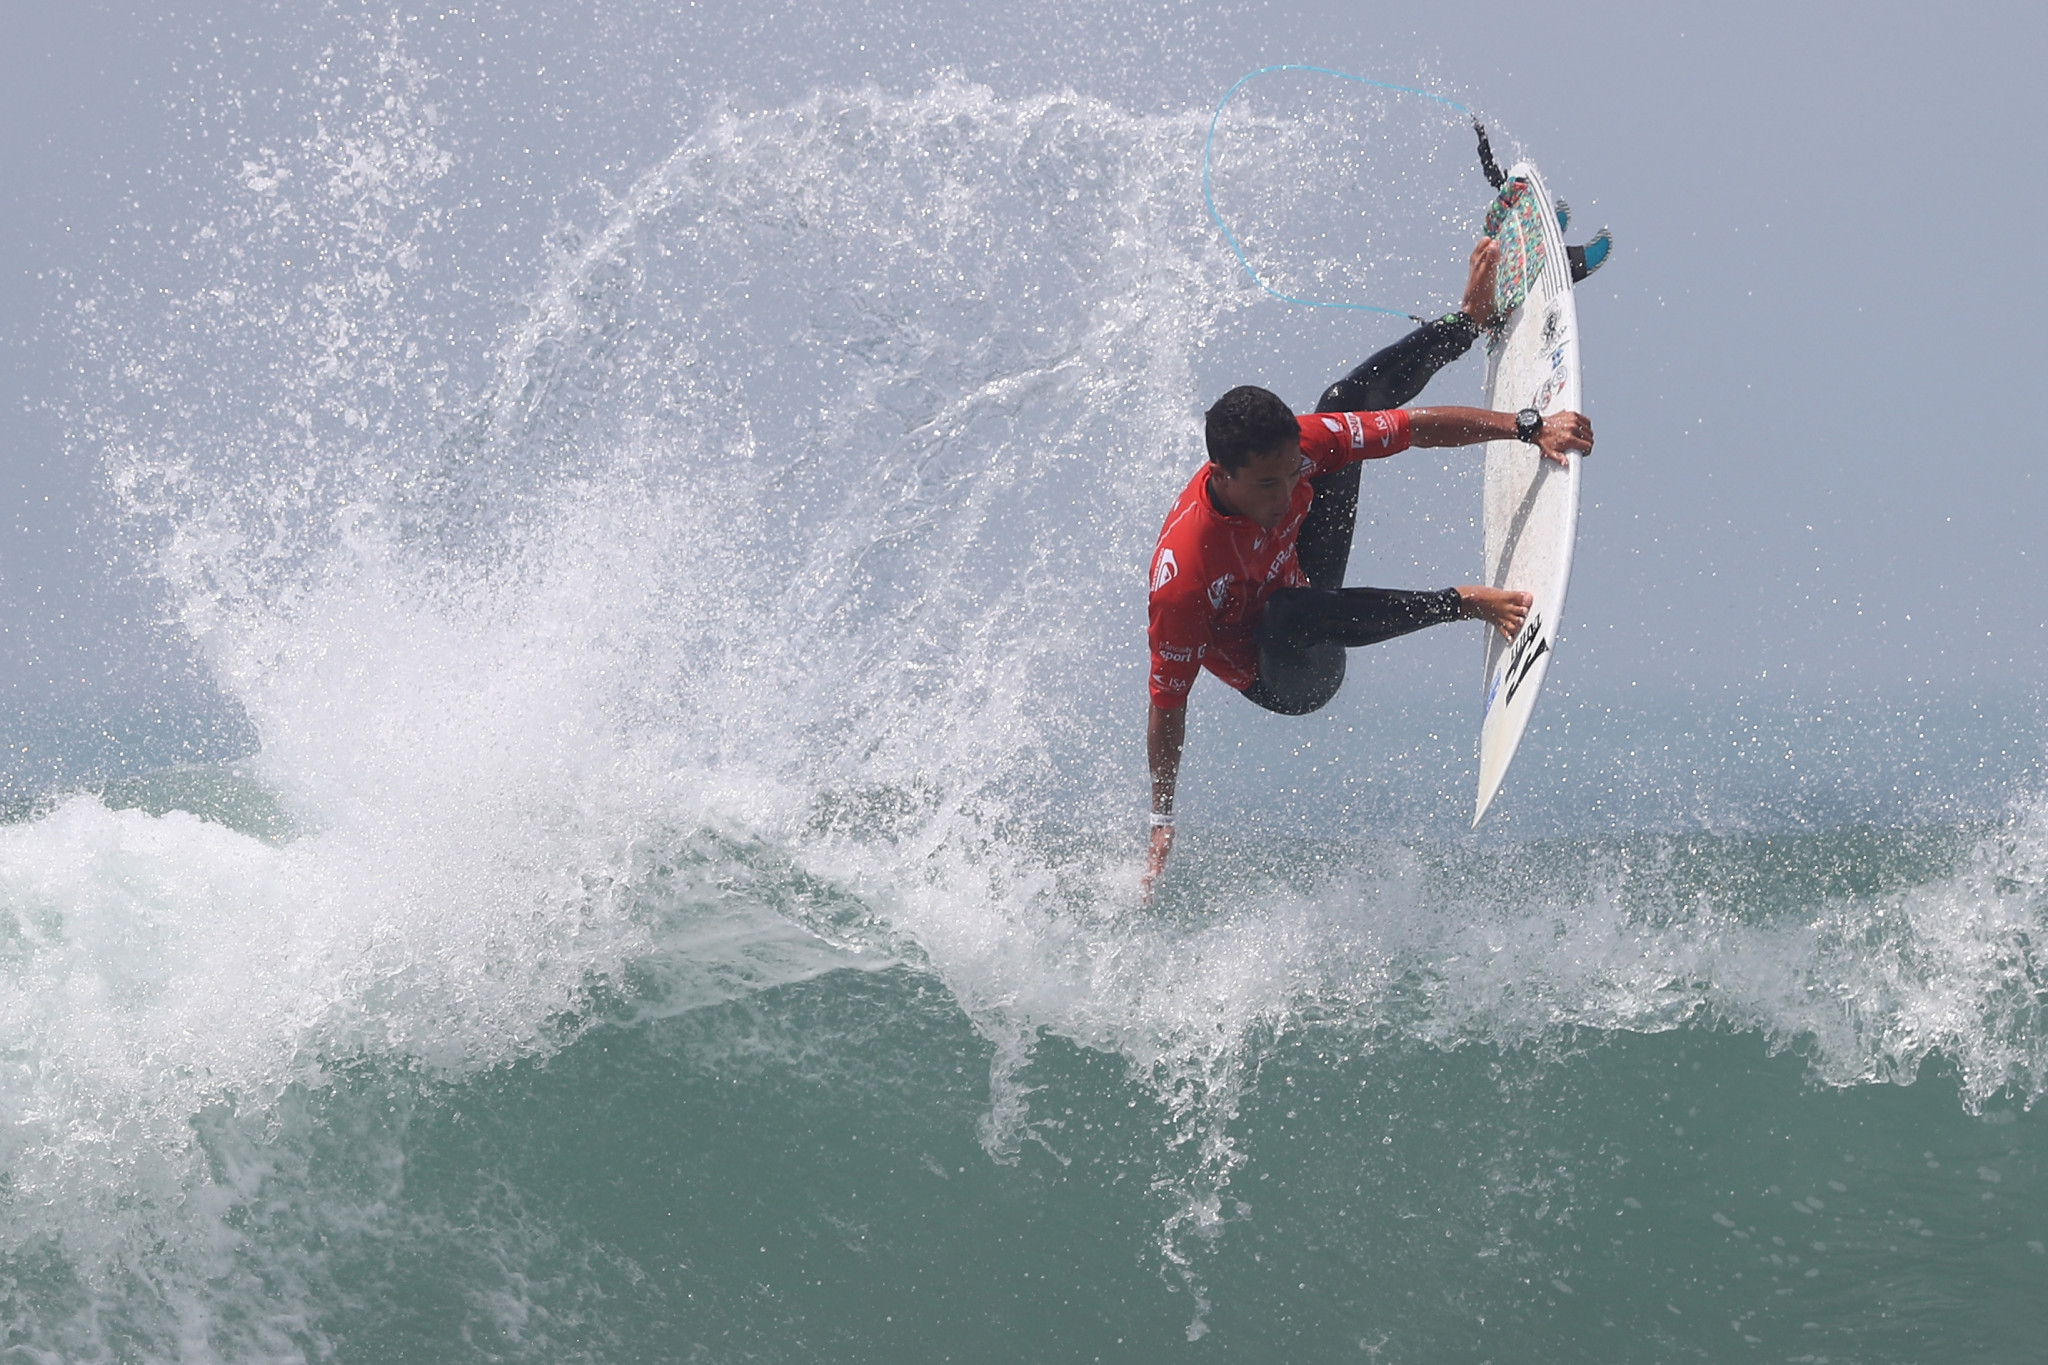 Biarritz is expected to be a candidate to host Paris 2024 surfing competitions ©Getty Images